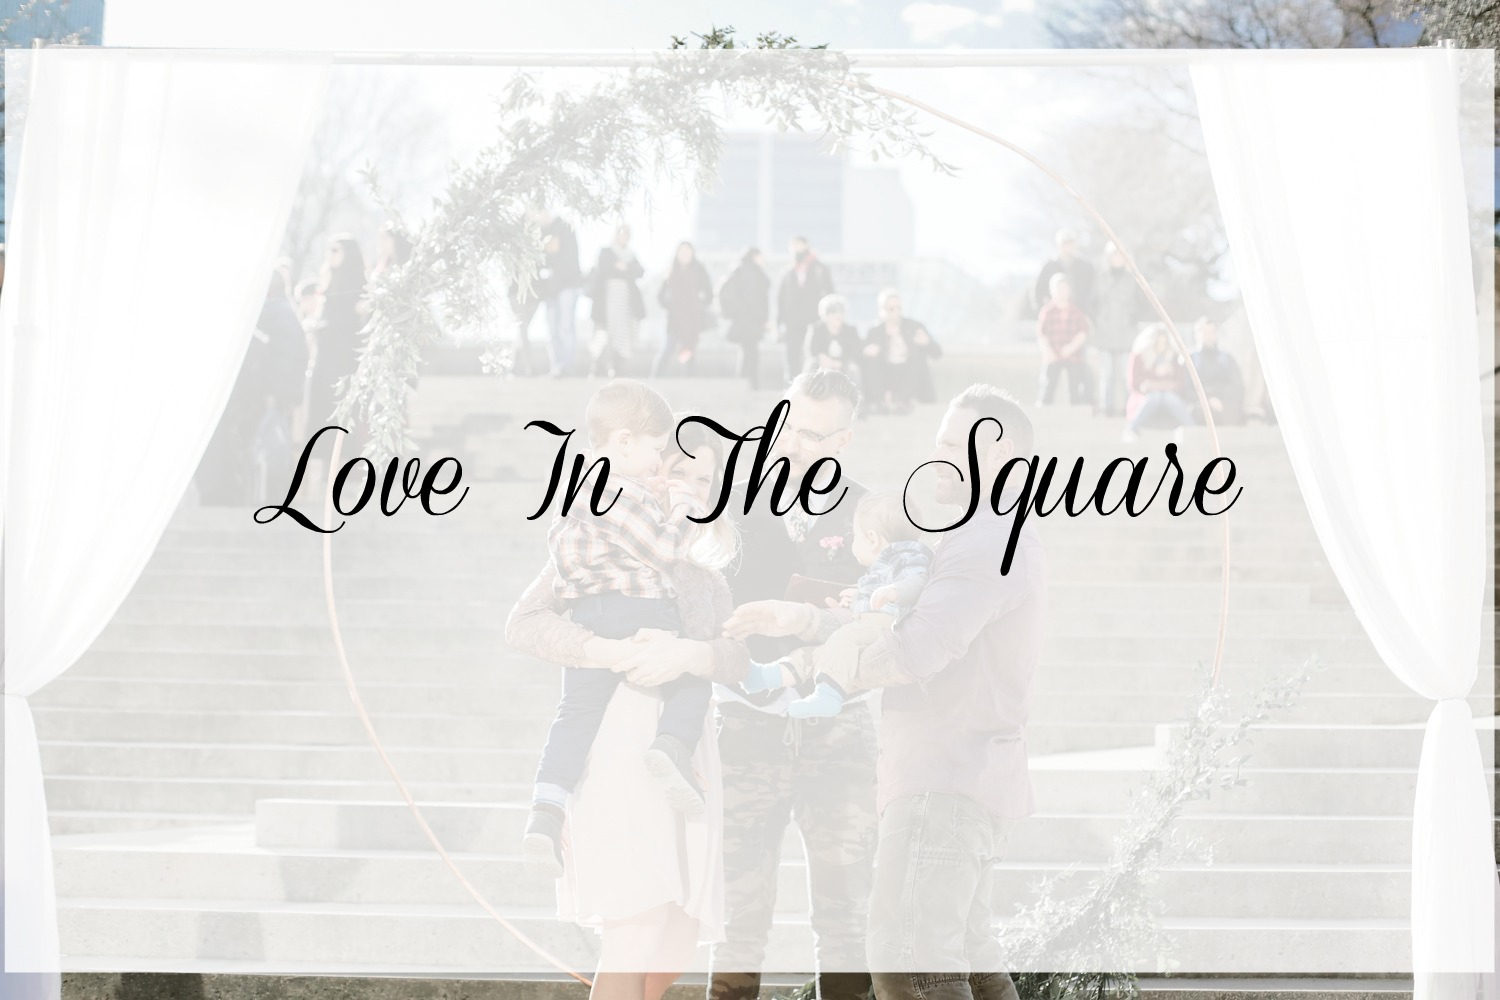 Have a pop up wedding at Robson Square this month!